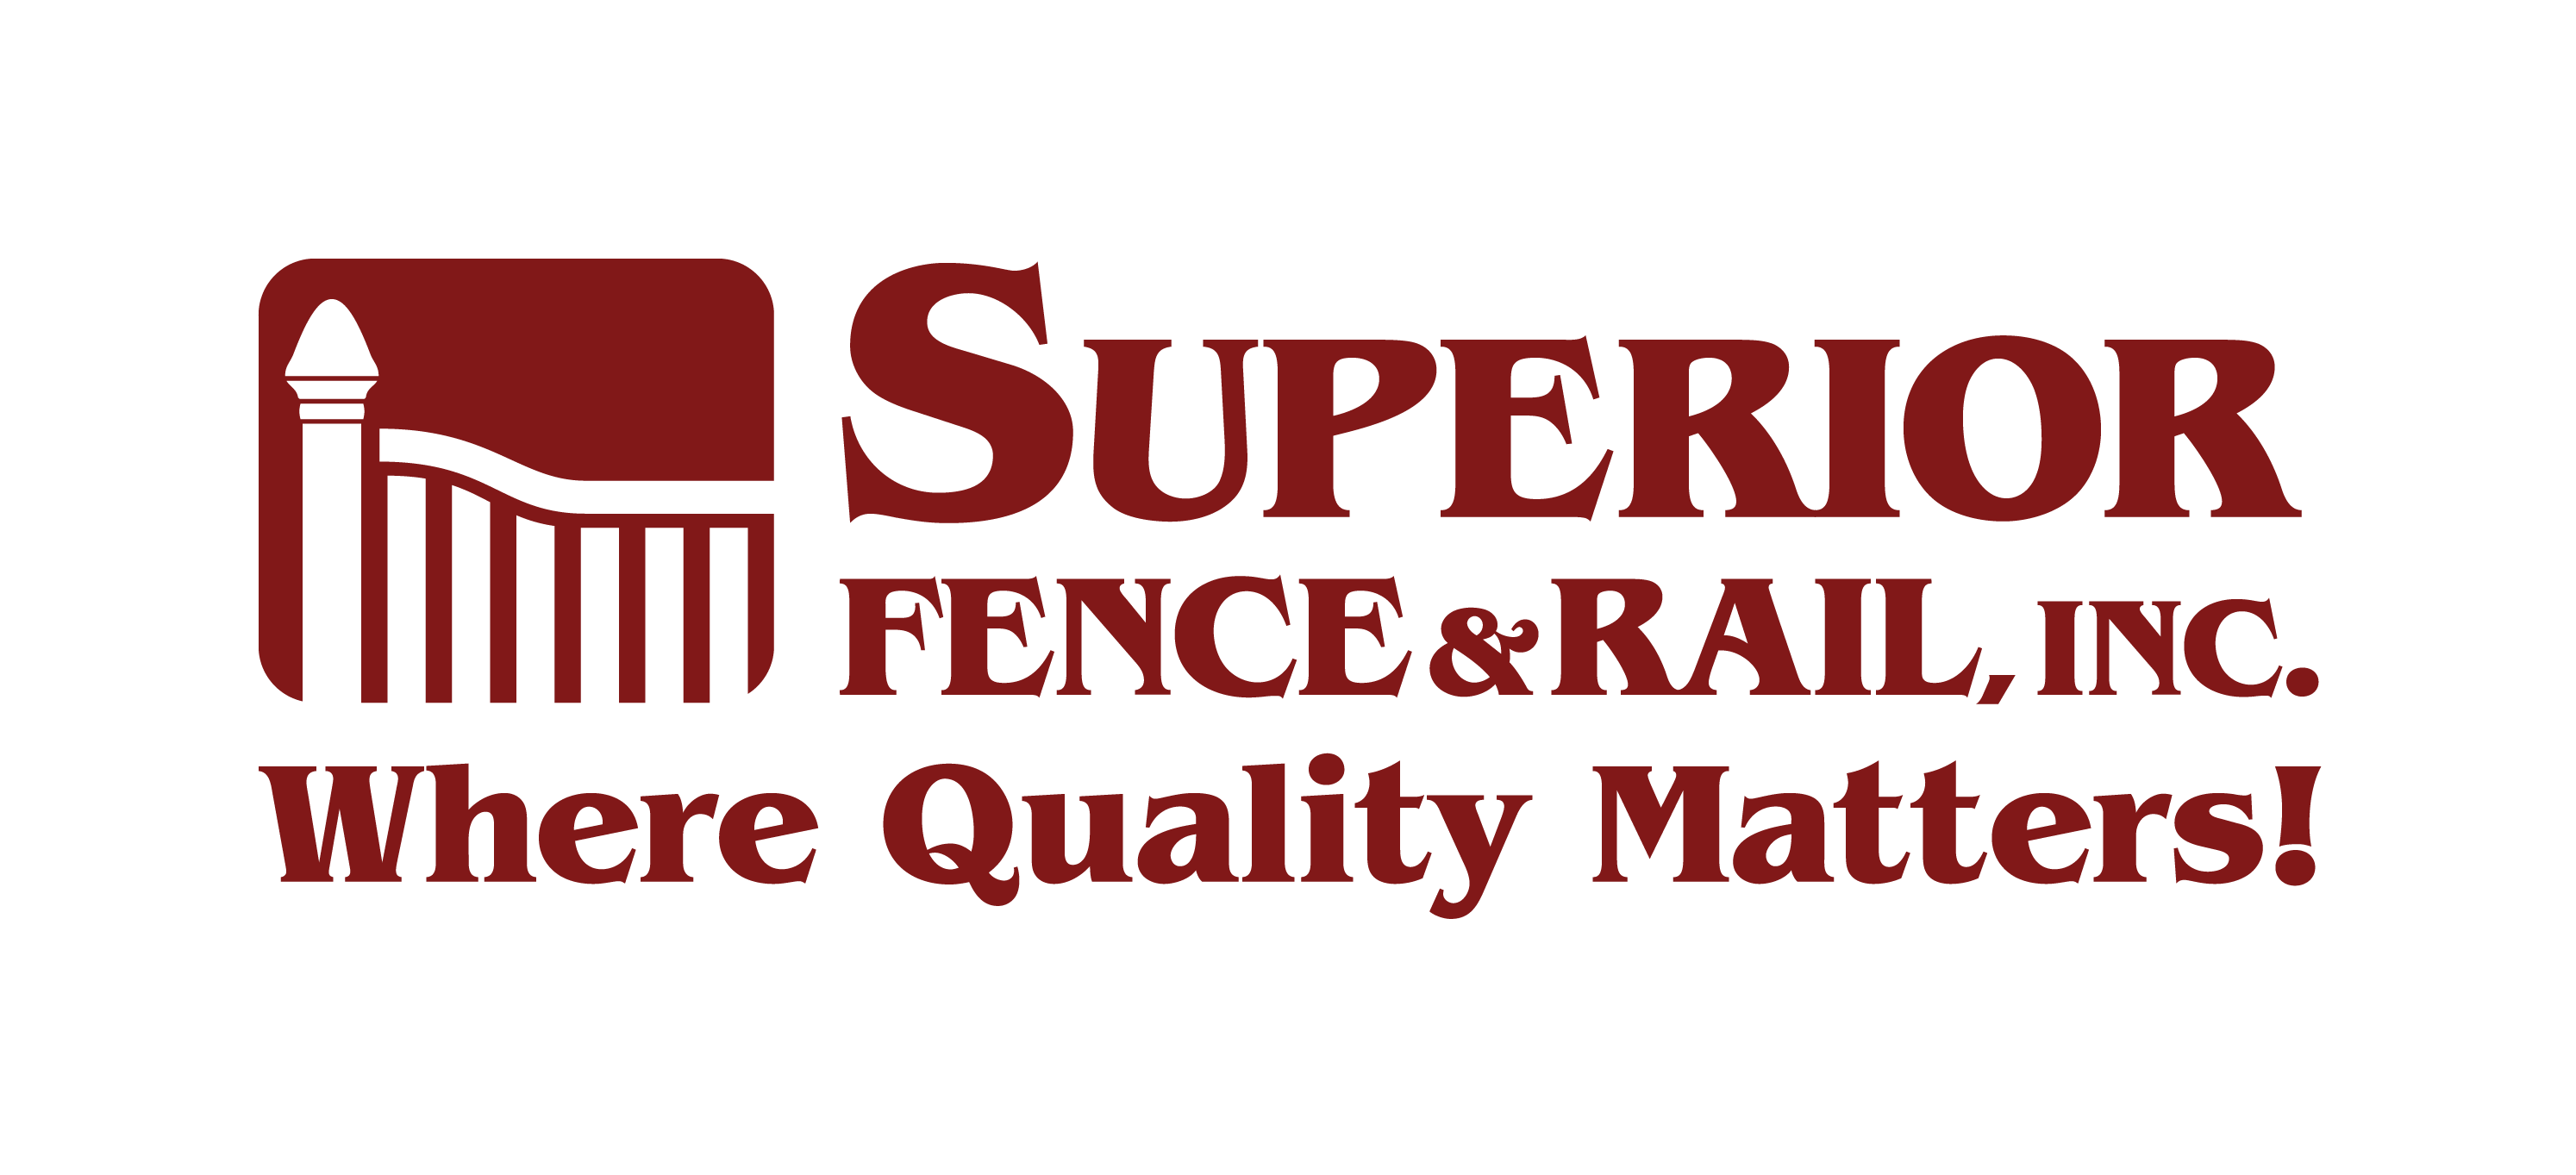 Family Tradition and Fate Bring New Gainesville Superior Fence & Rail Franchisee Full Circle